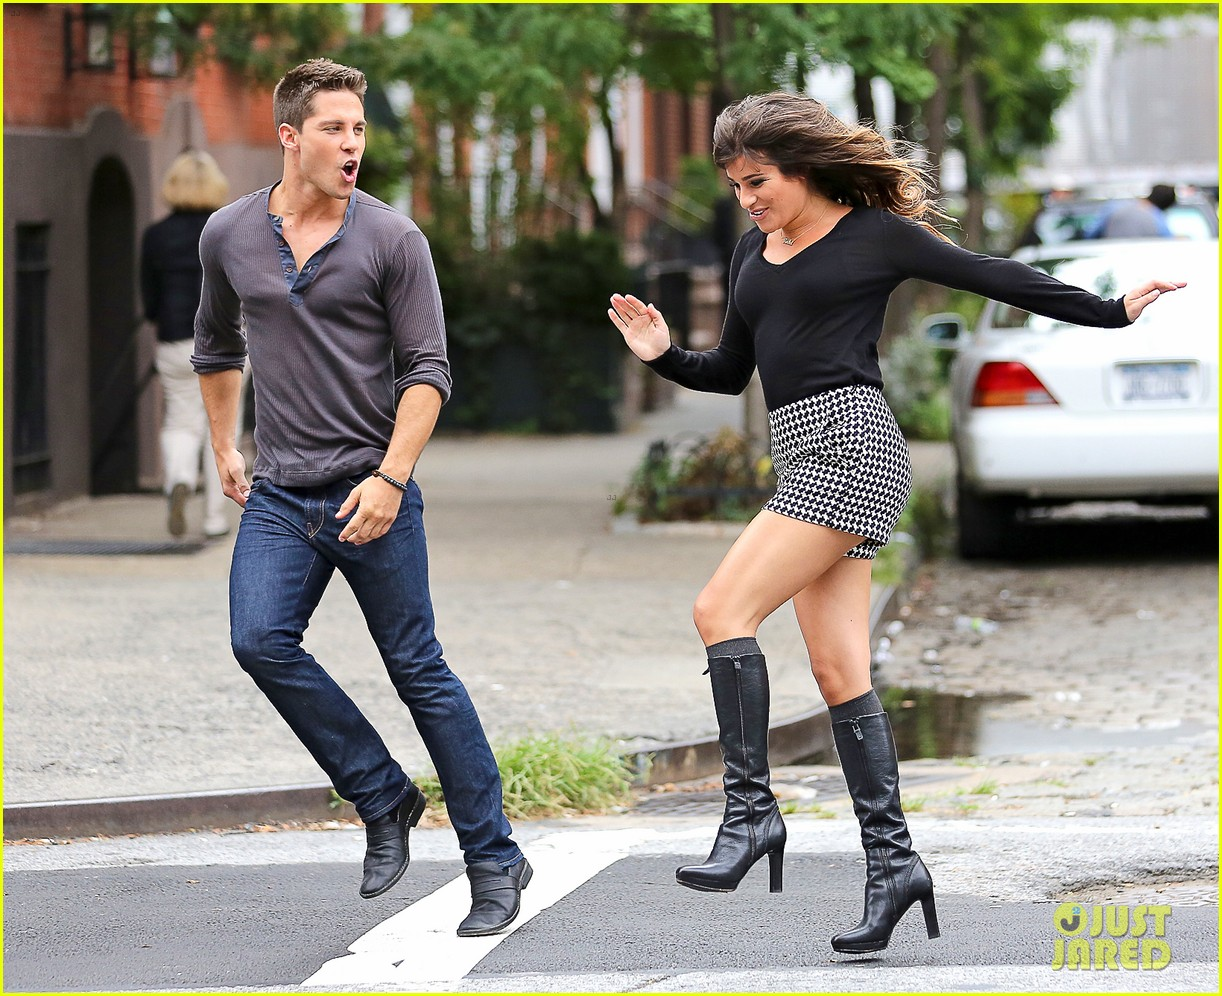 Full Sized Photo of lea michele glee day with dean geyer 22 | Photo ...